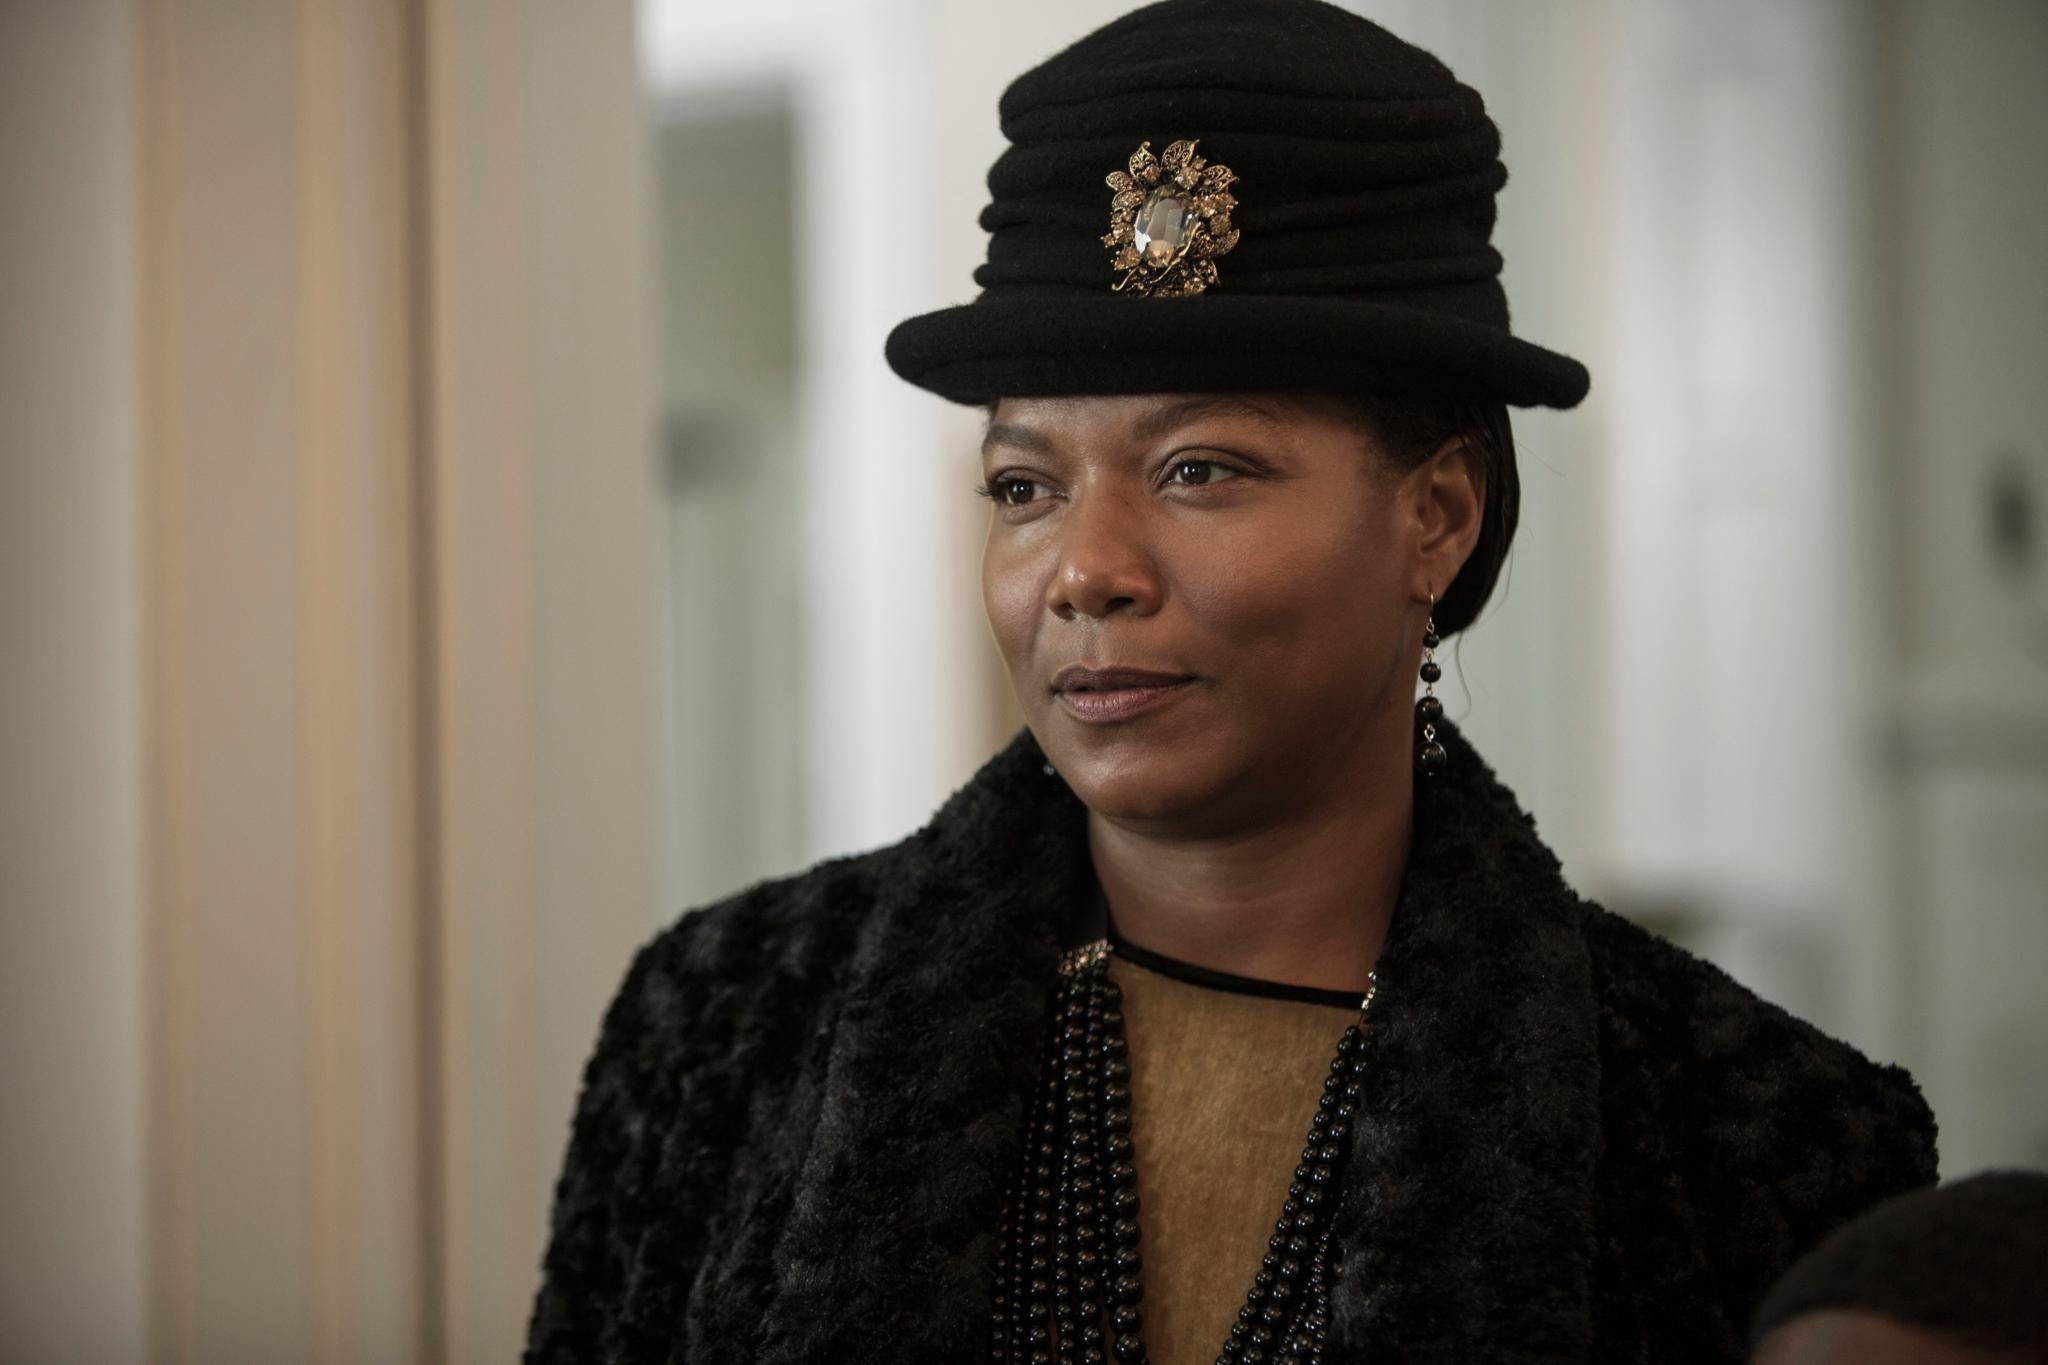 First Look: See Queen Latifah As Bessie Smith in HBO Biopic